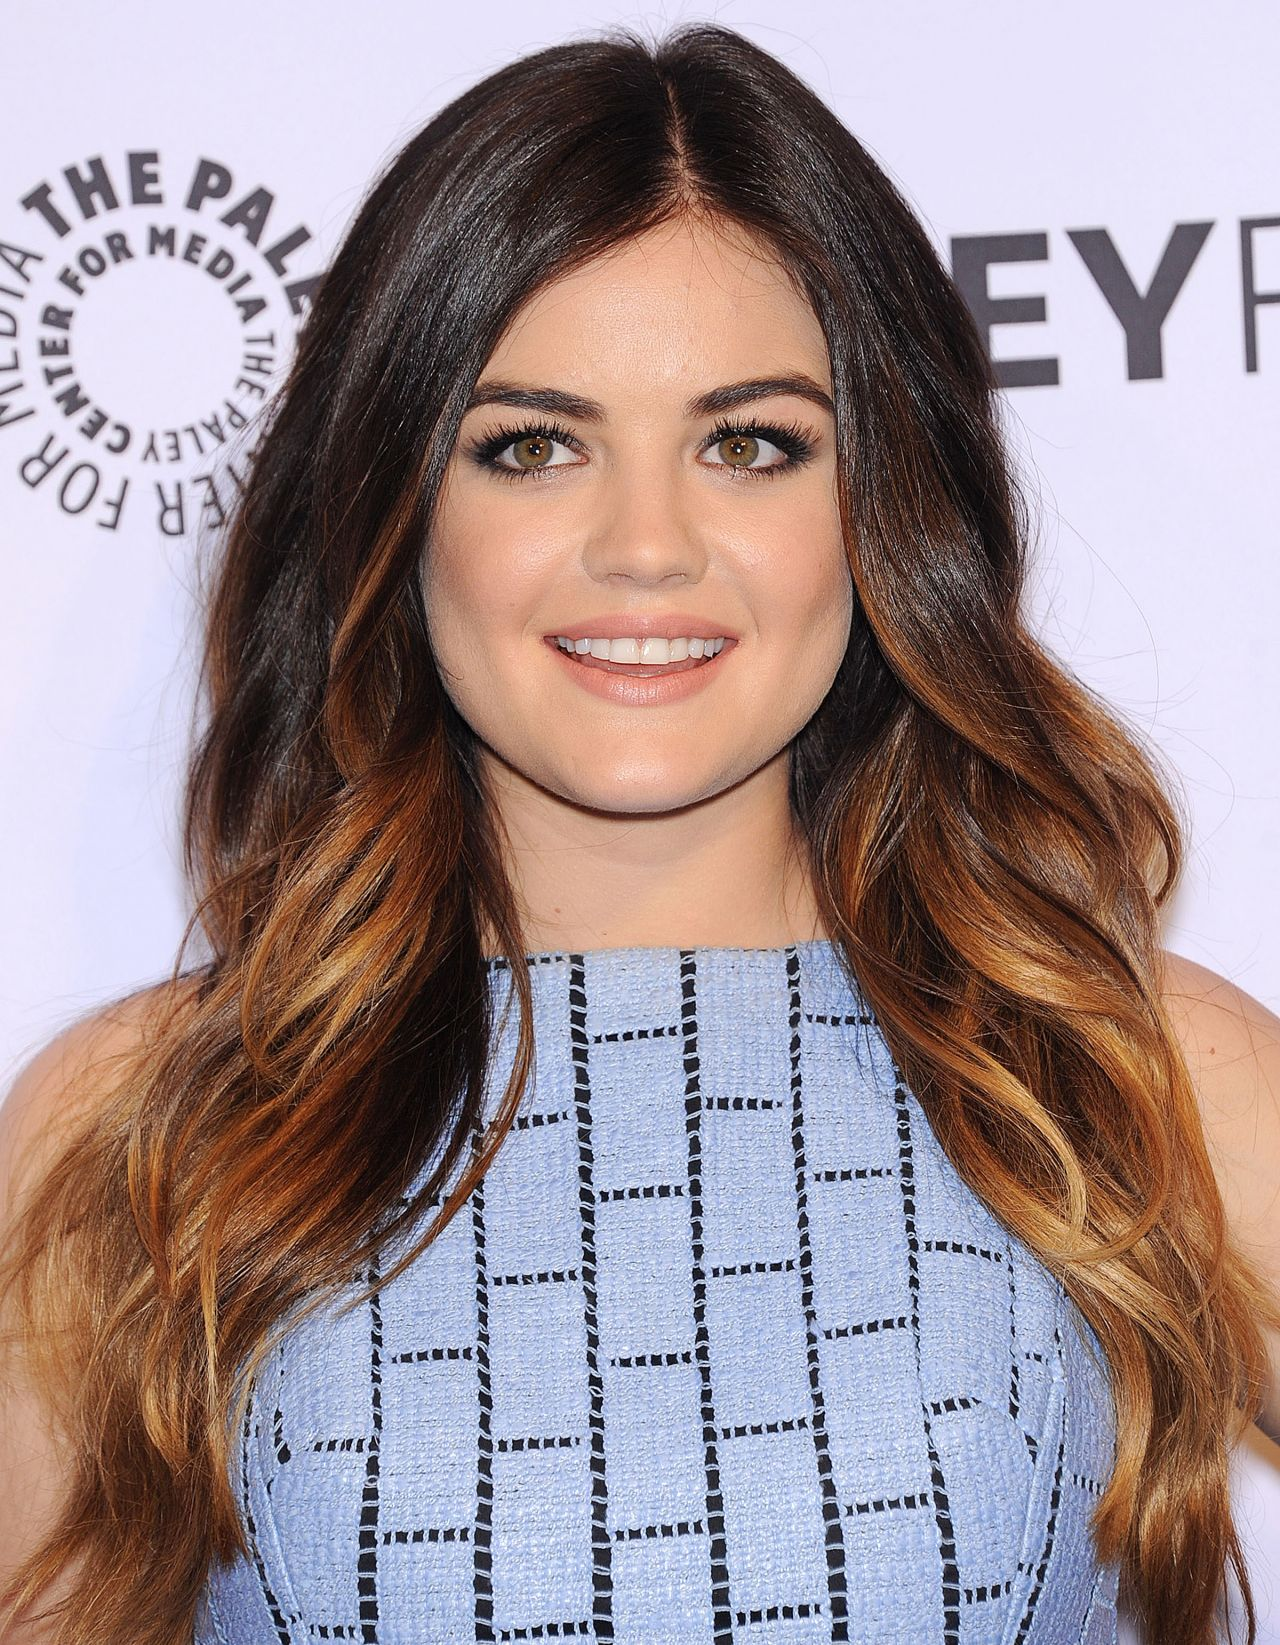 lucy-hale-pretty-little-liars-at-paleyfest-2014_1